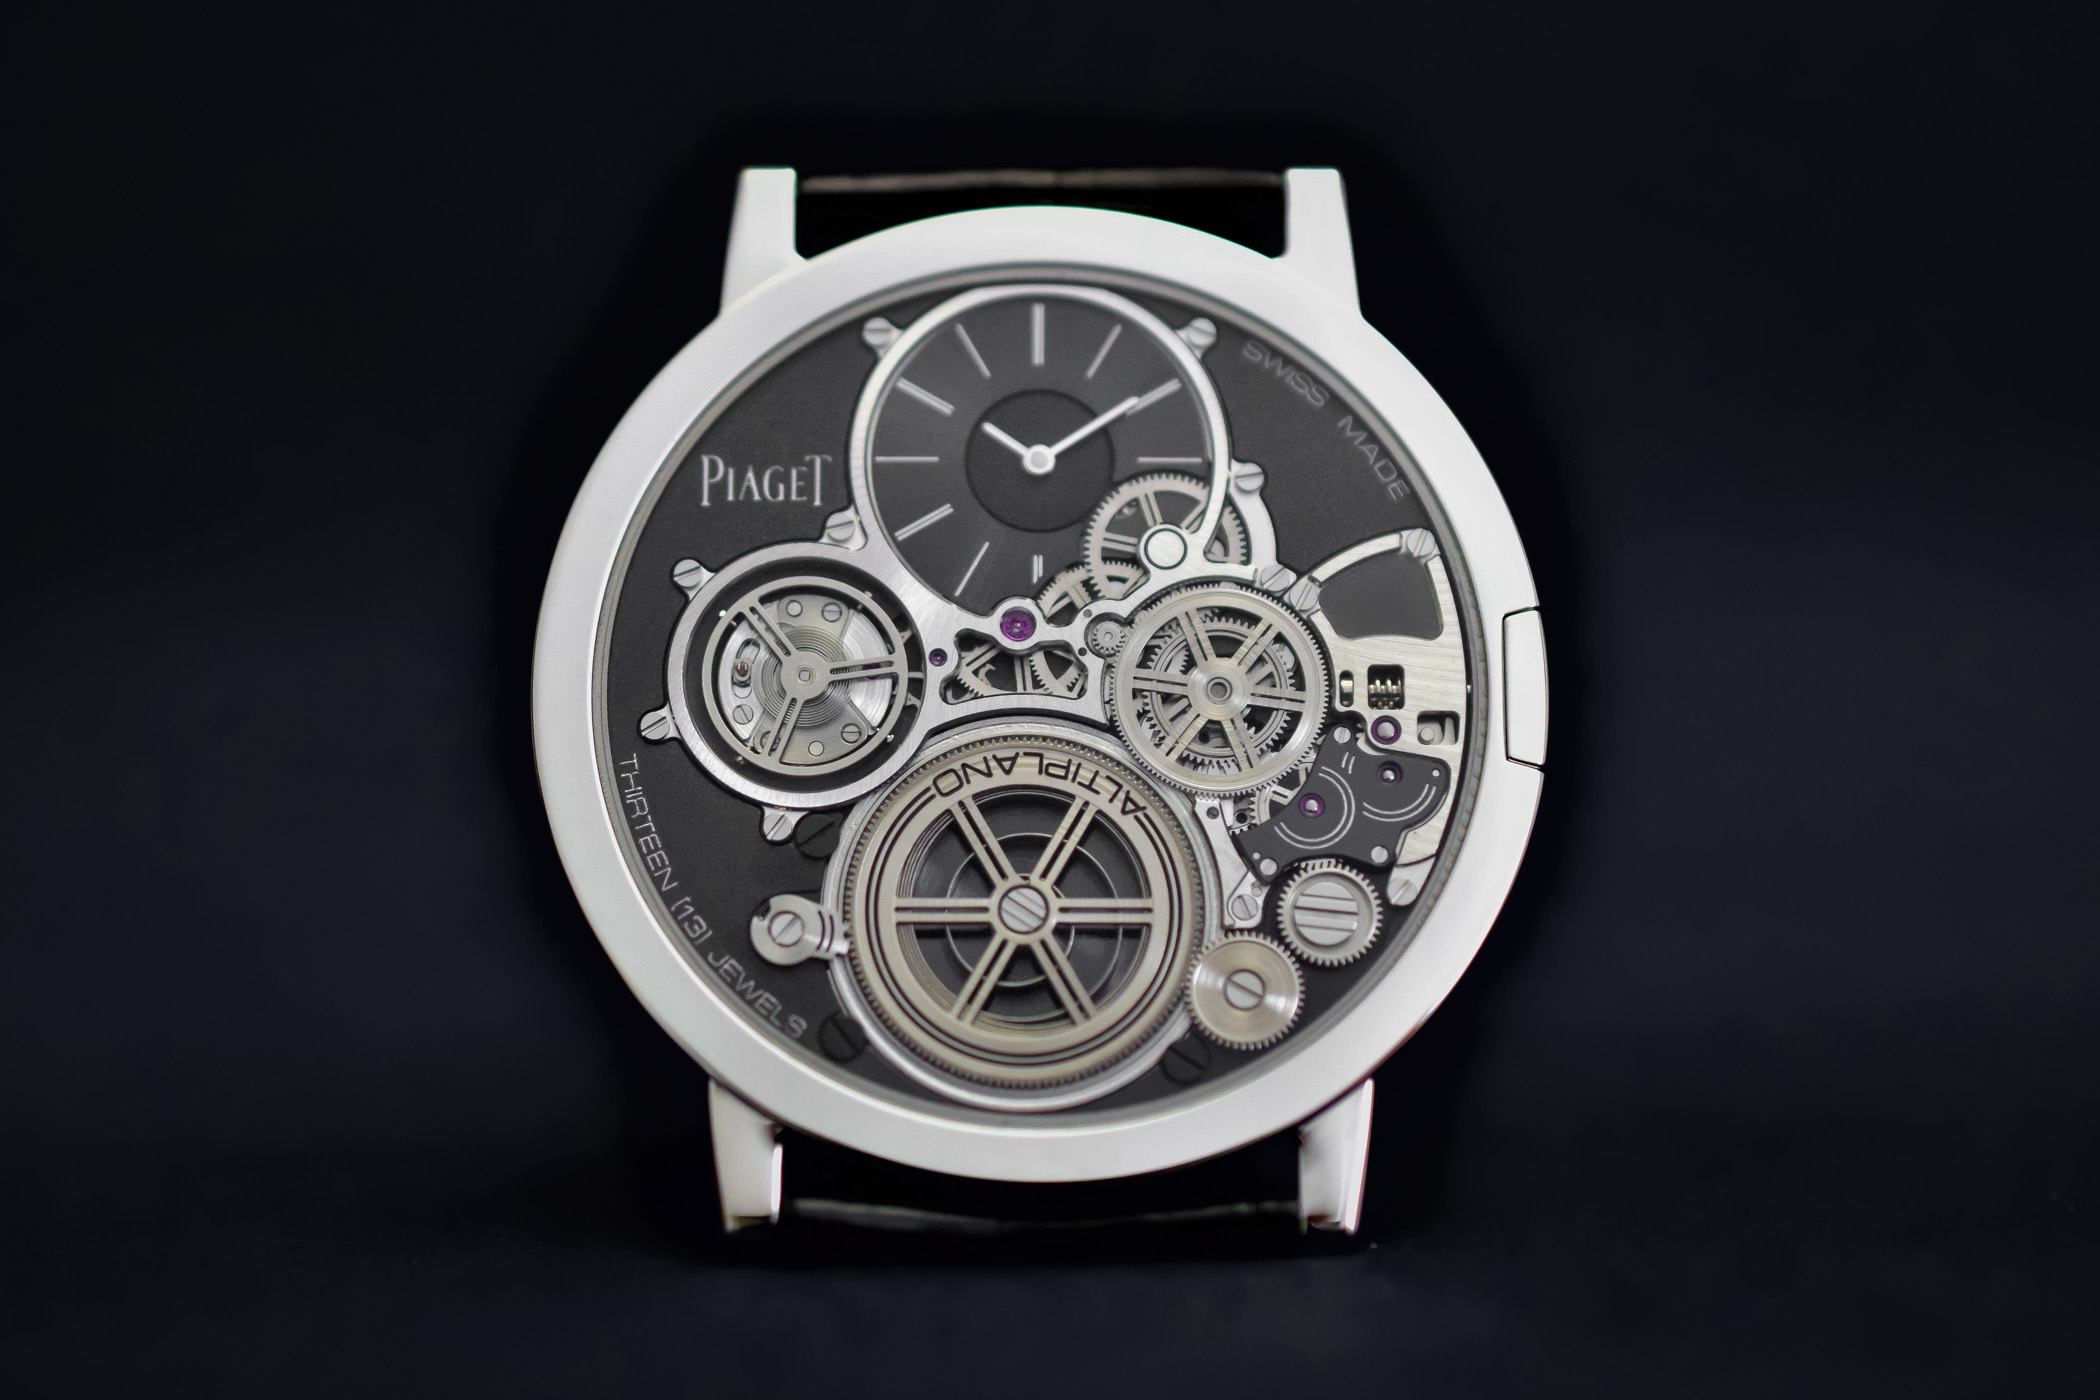 Piaget Altiplano Ultimate Concept The Worlds Thinnest